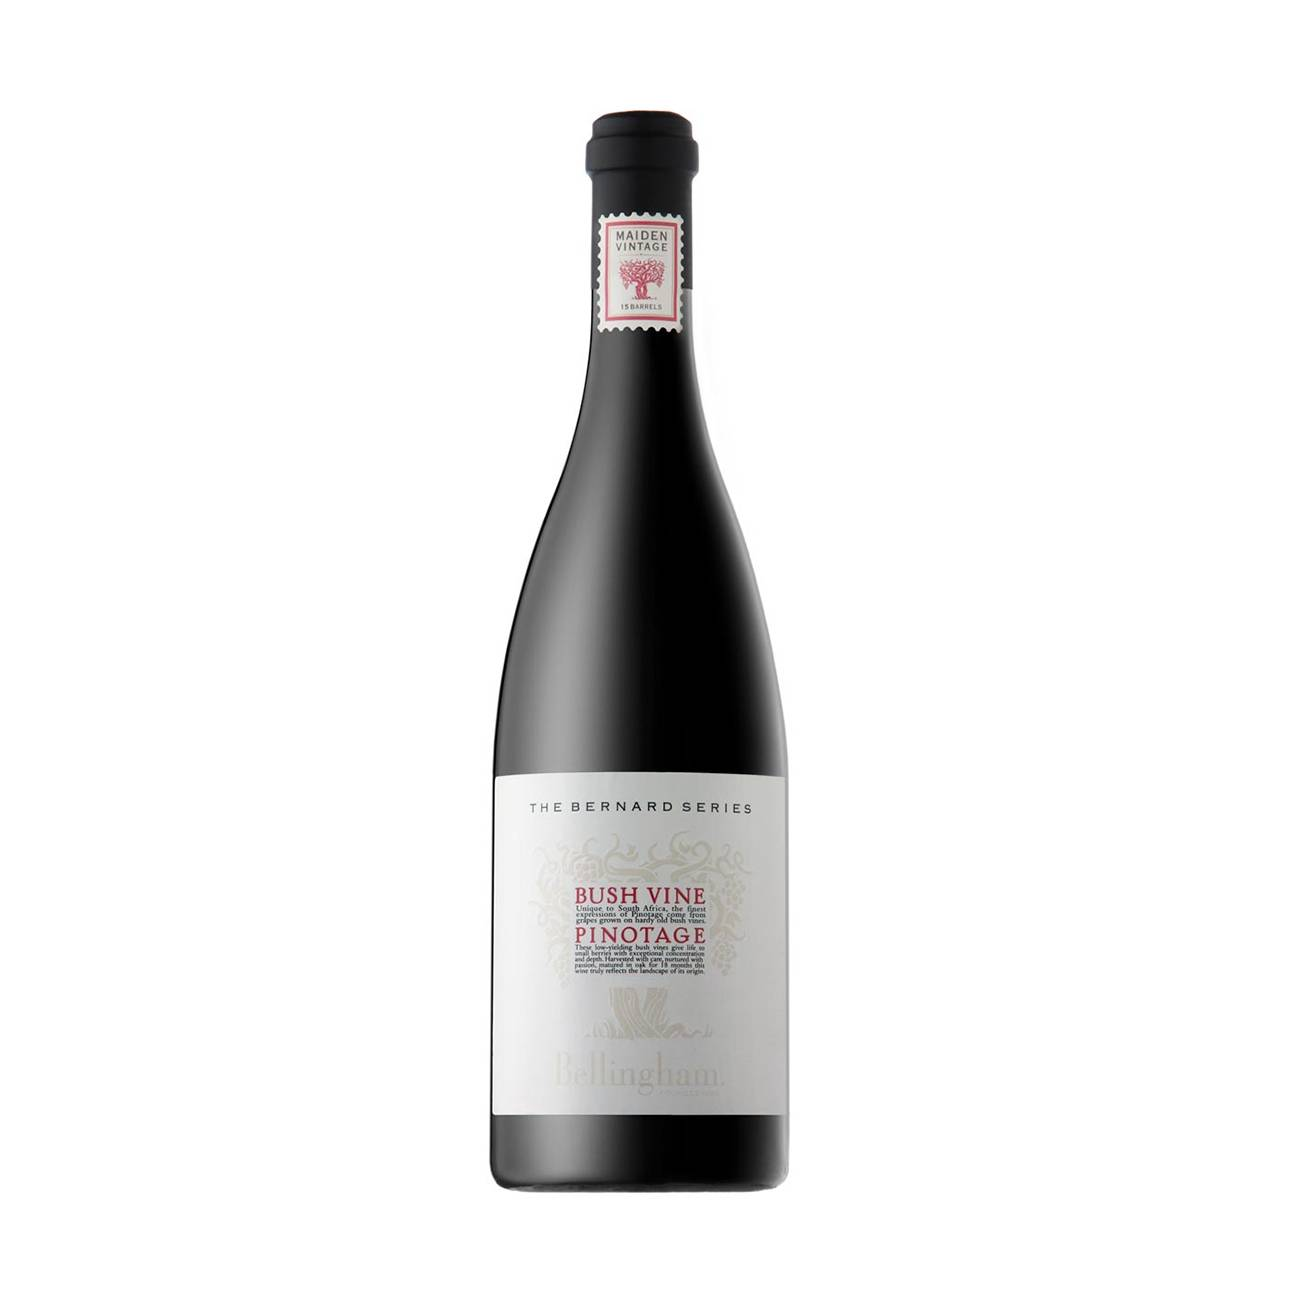 The Bernard Series Bush Vine Pinotage 750ml